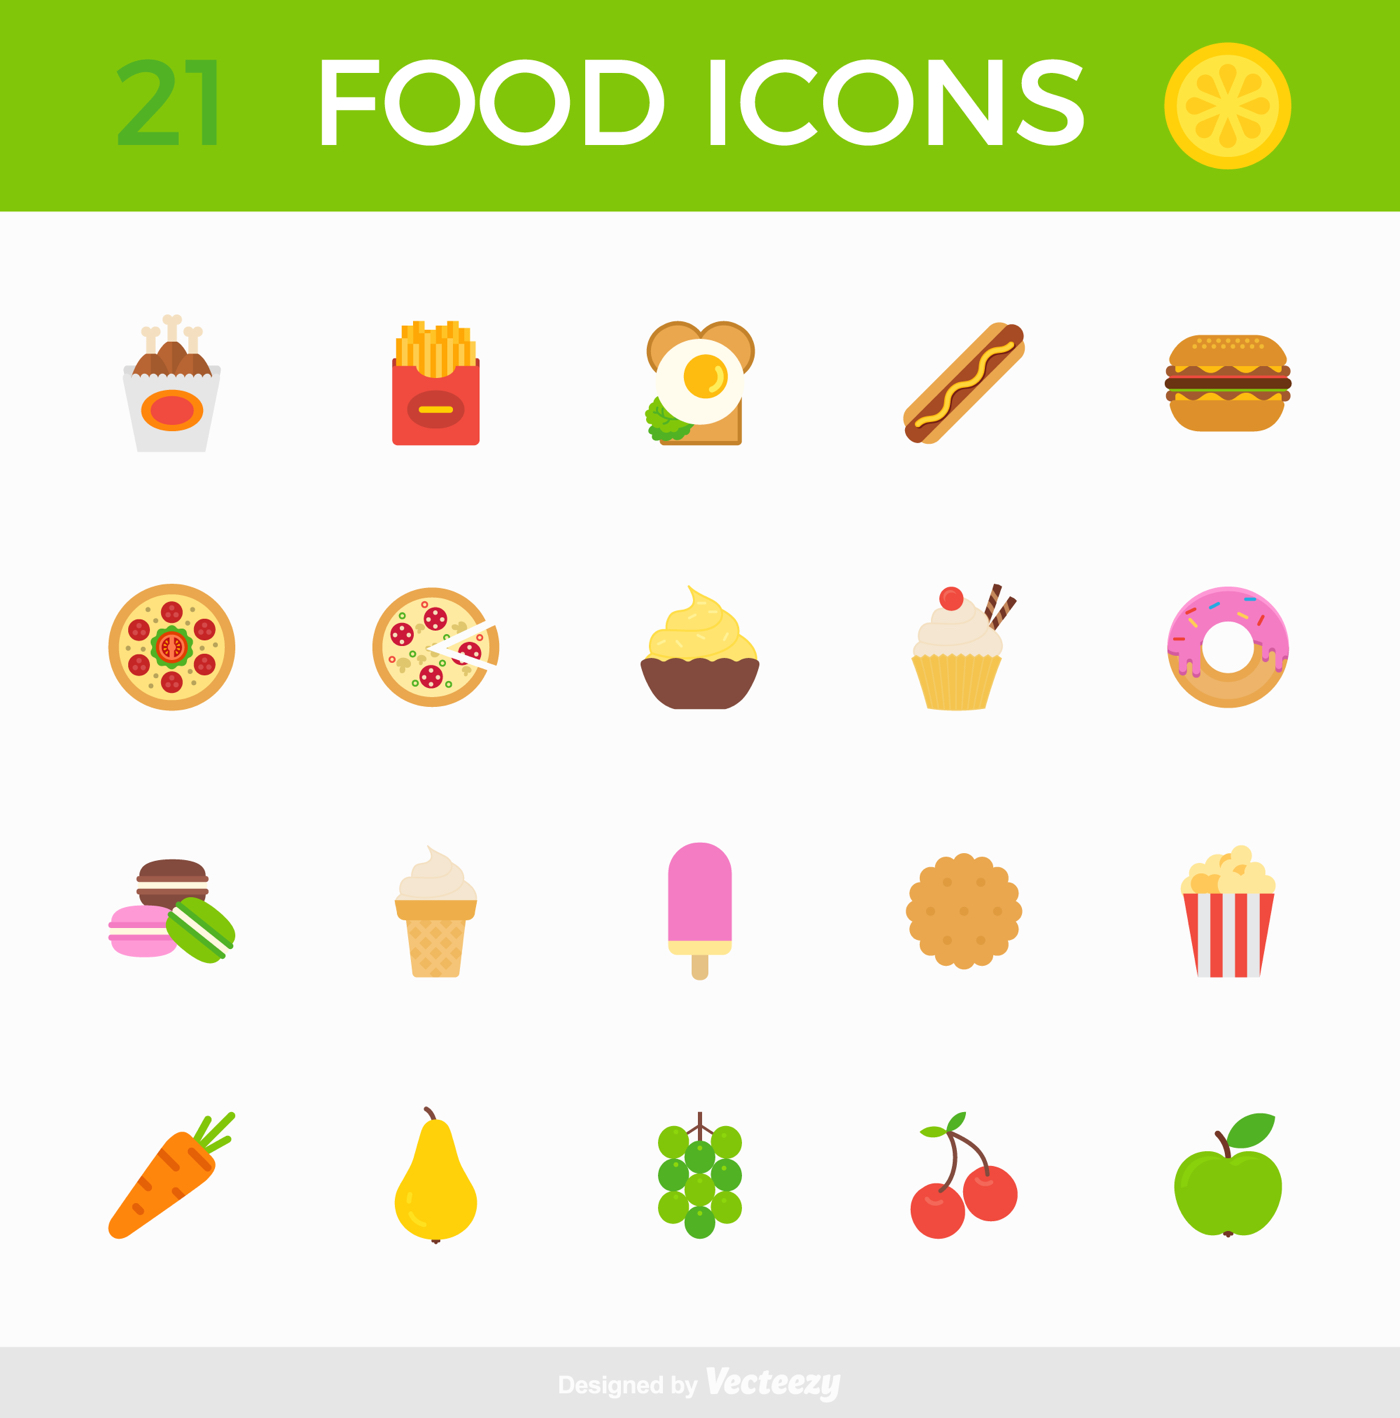 Tasty Food Free Icon Pack - 21 free, tasty food icons for your next product design project